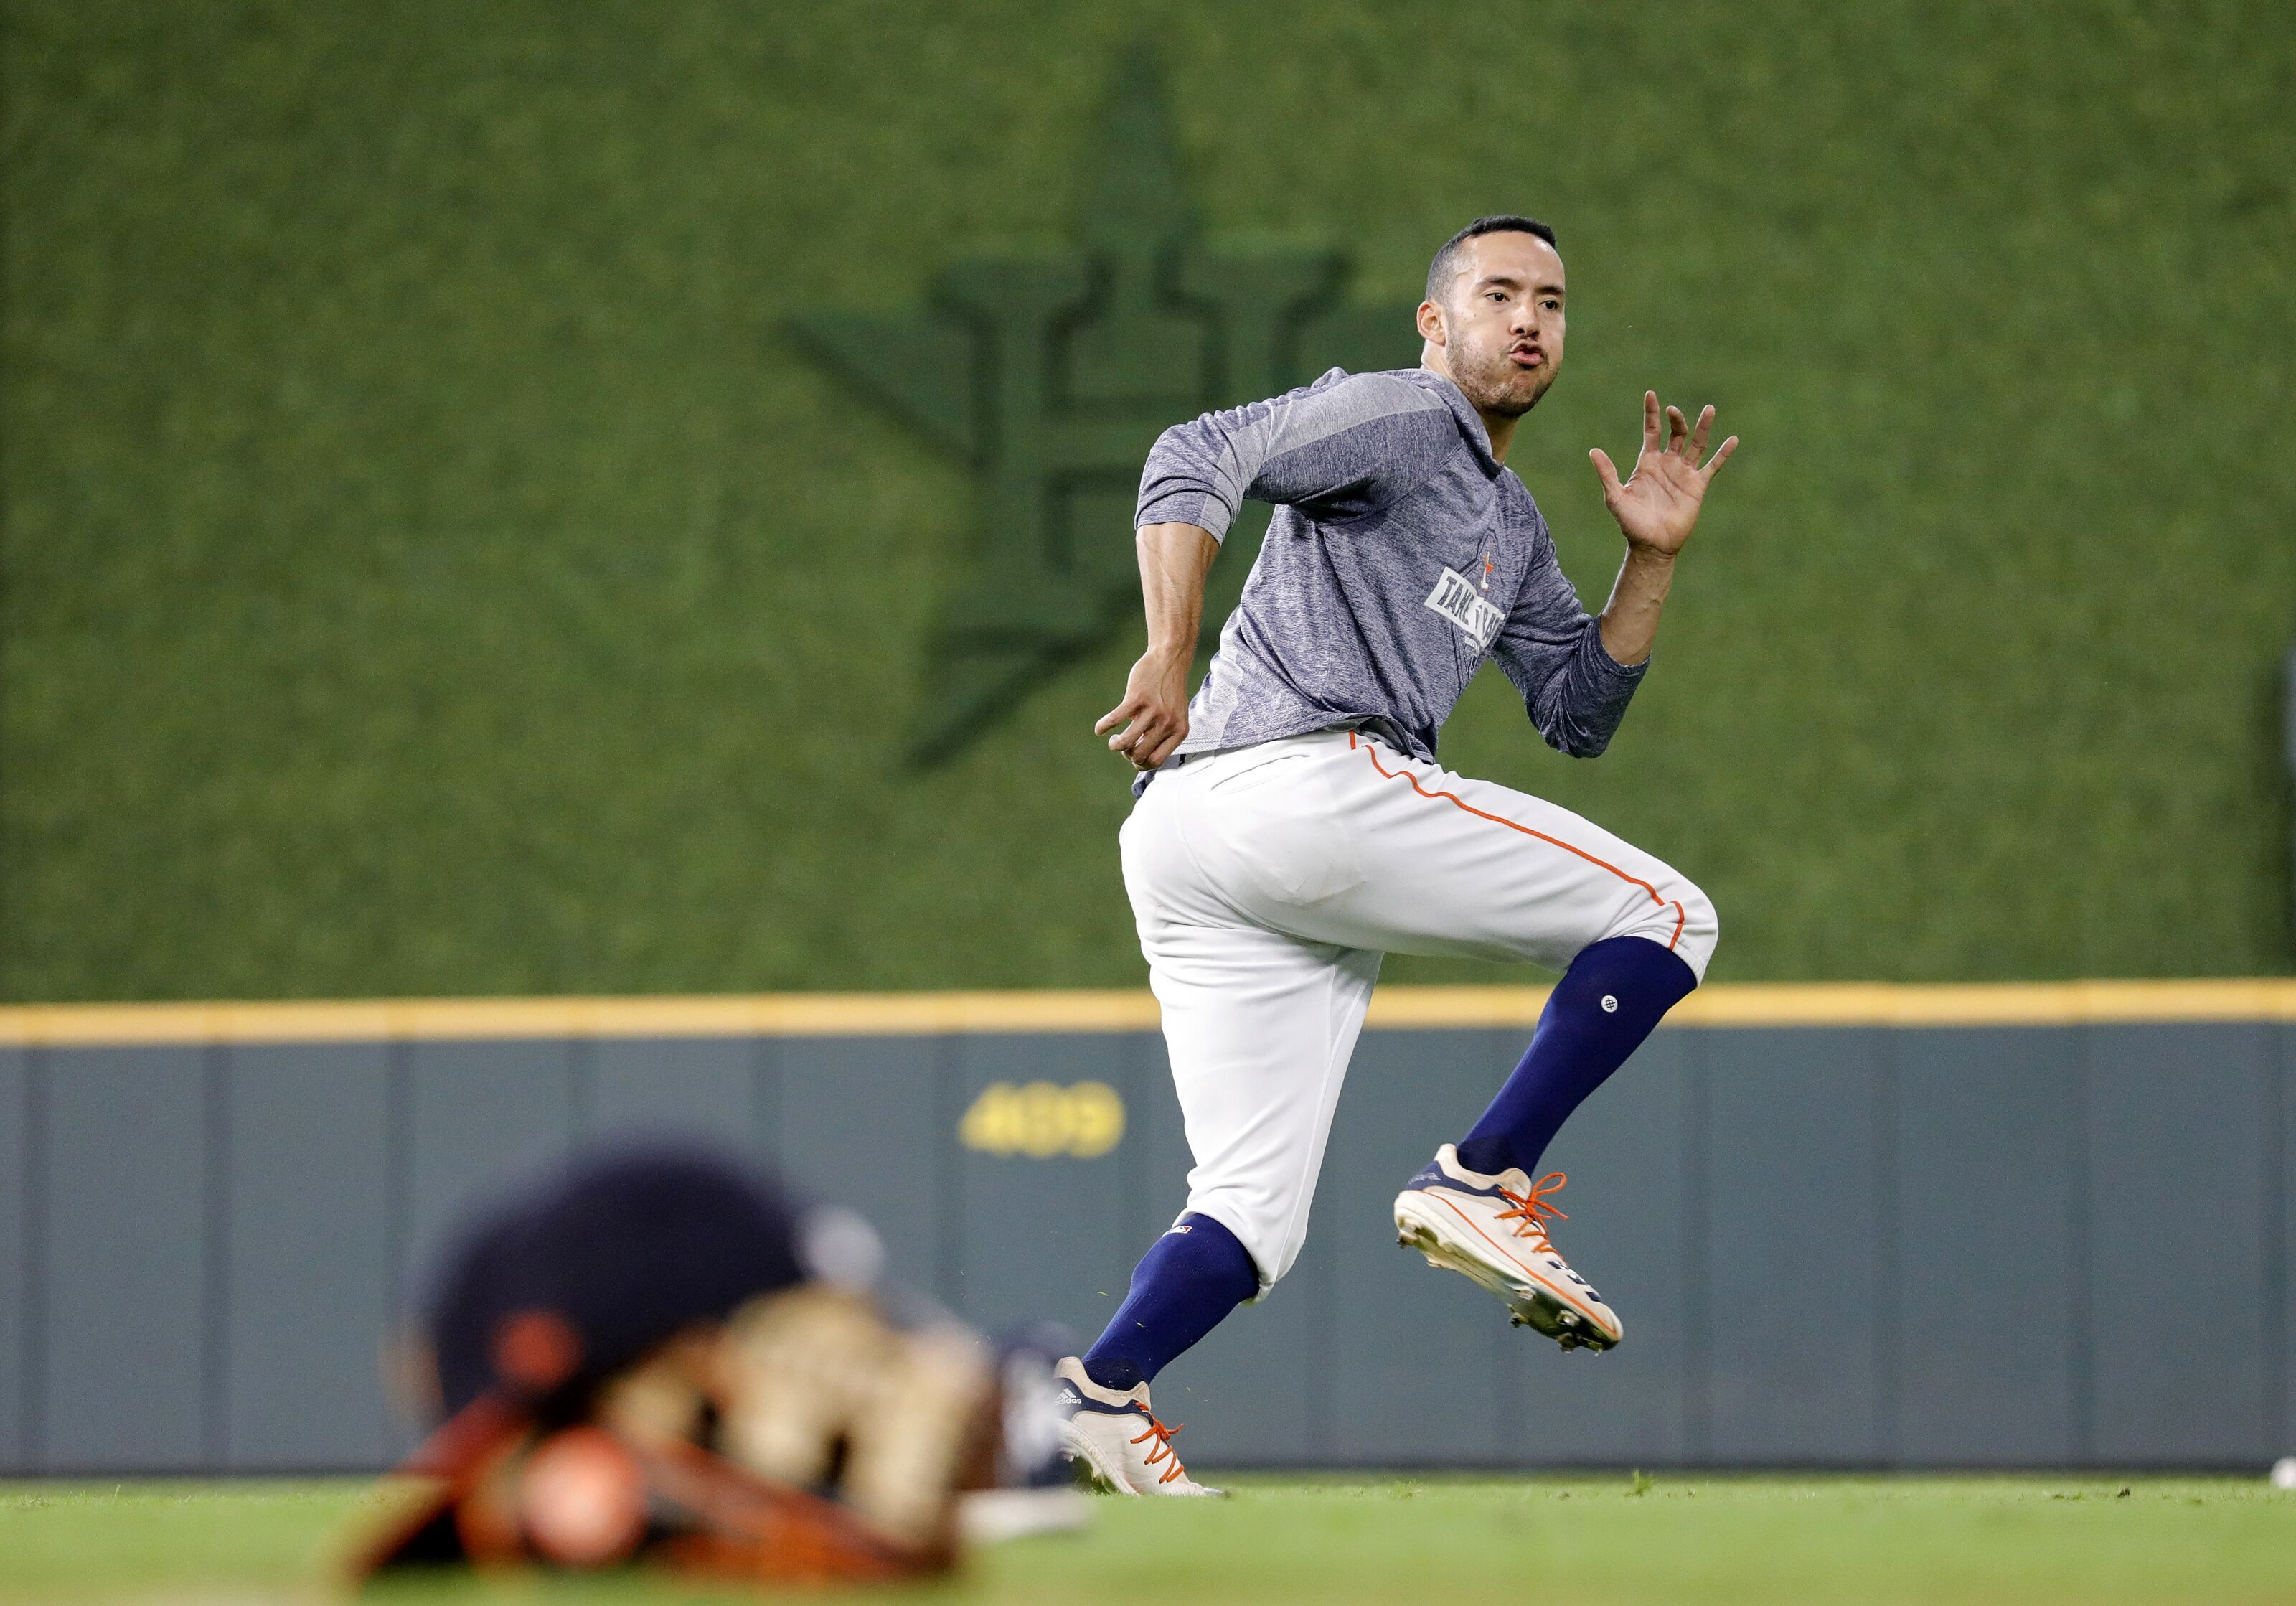 Houston Astros: Carlos Correa could be days away from a return